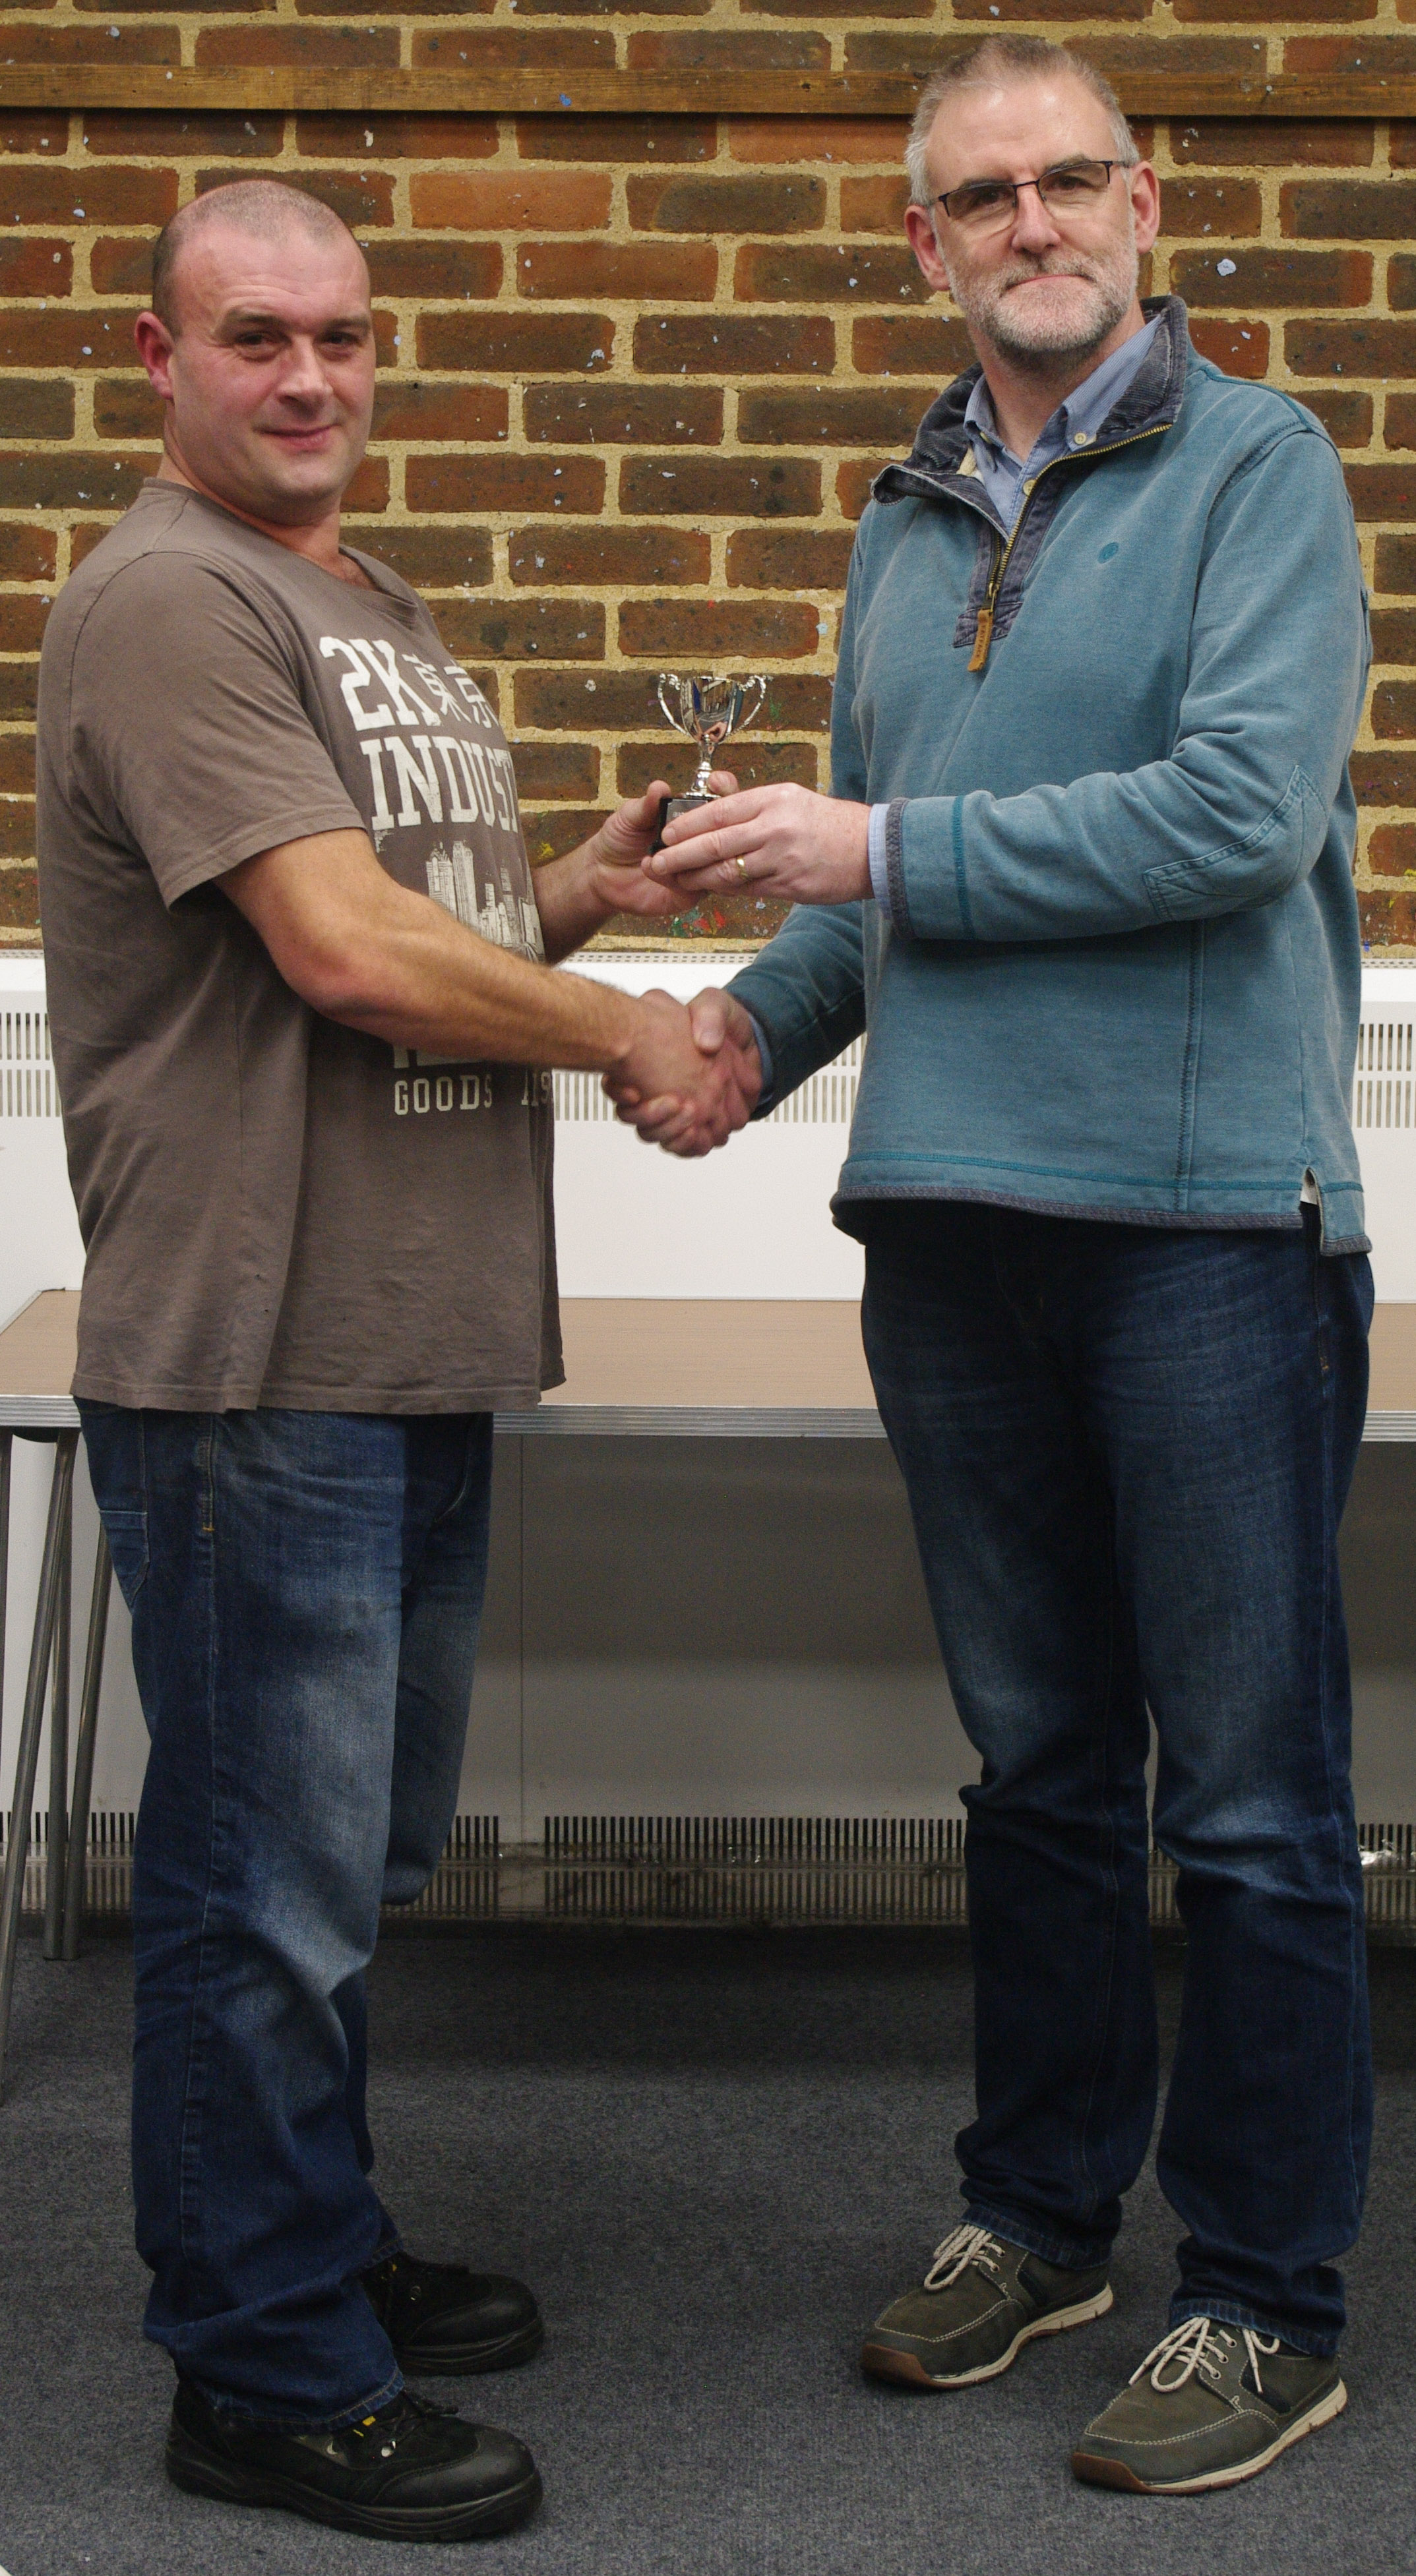 Spring 3rd Place - Duane Pearce